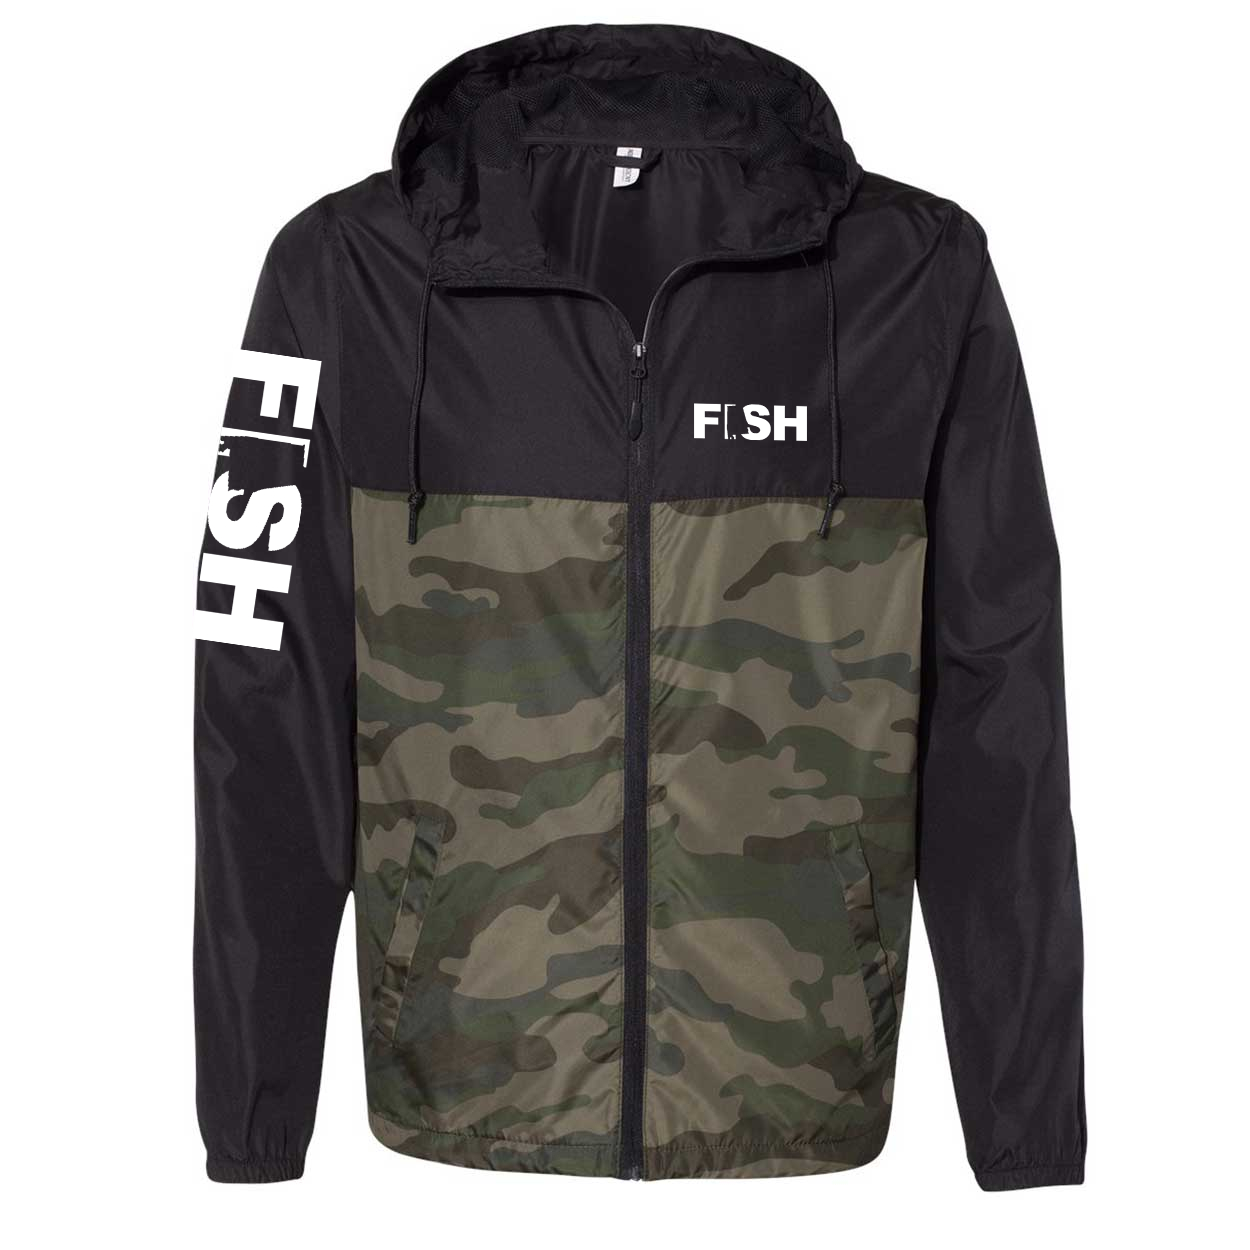 Fish Alabama Classic Lightweight Windbreaker Black/Forest Camo (White Logo)